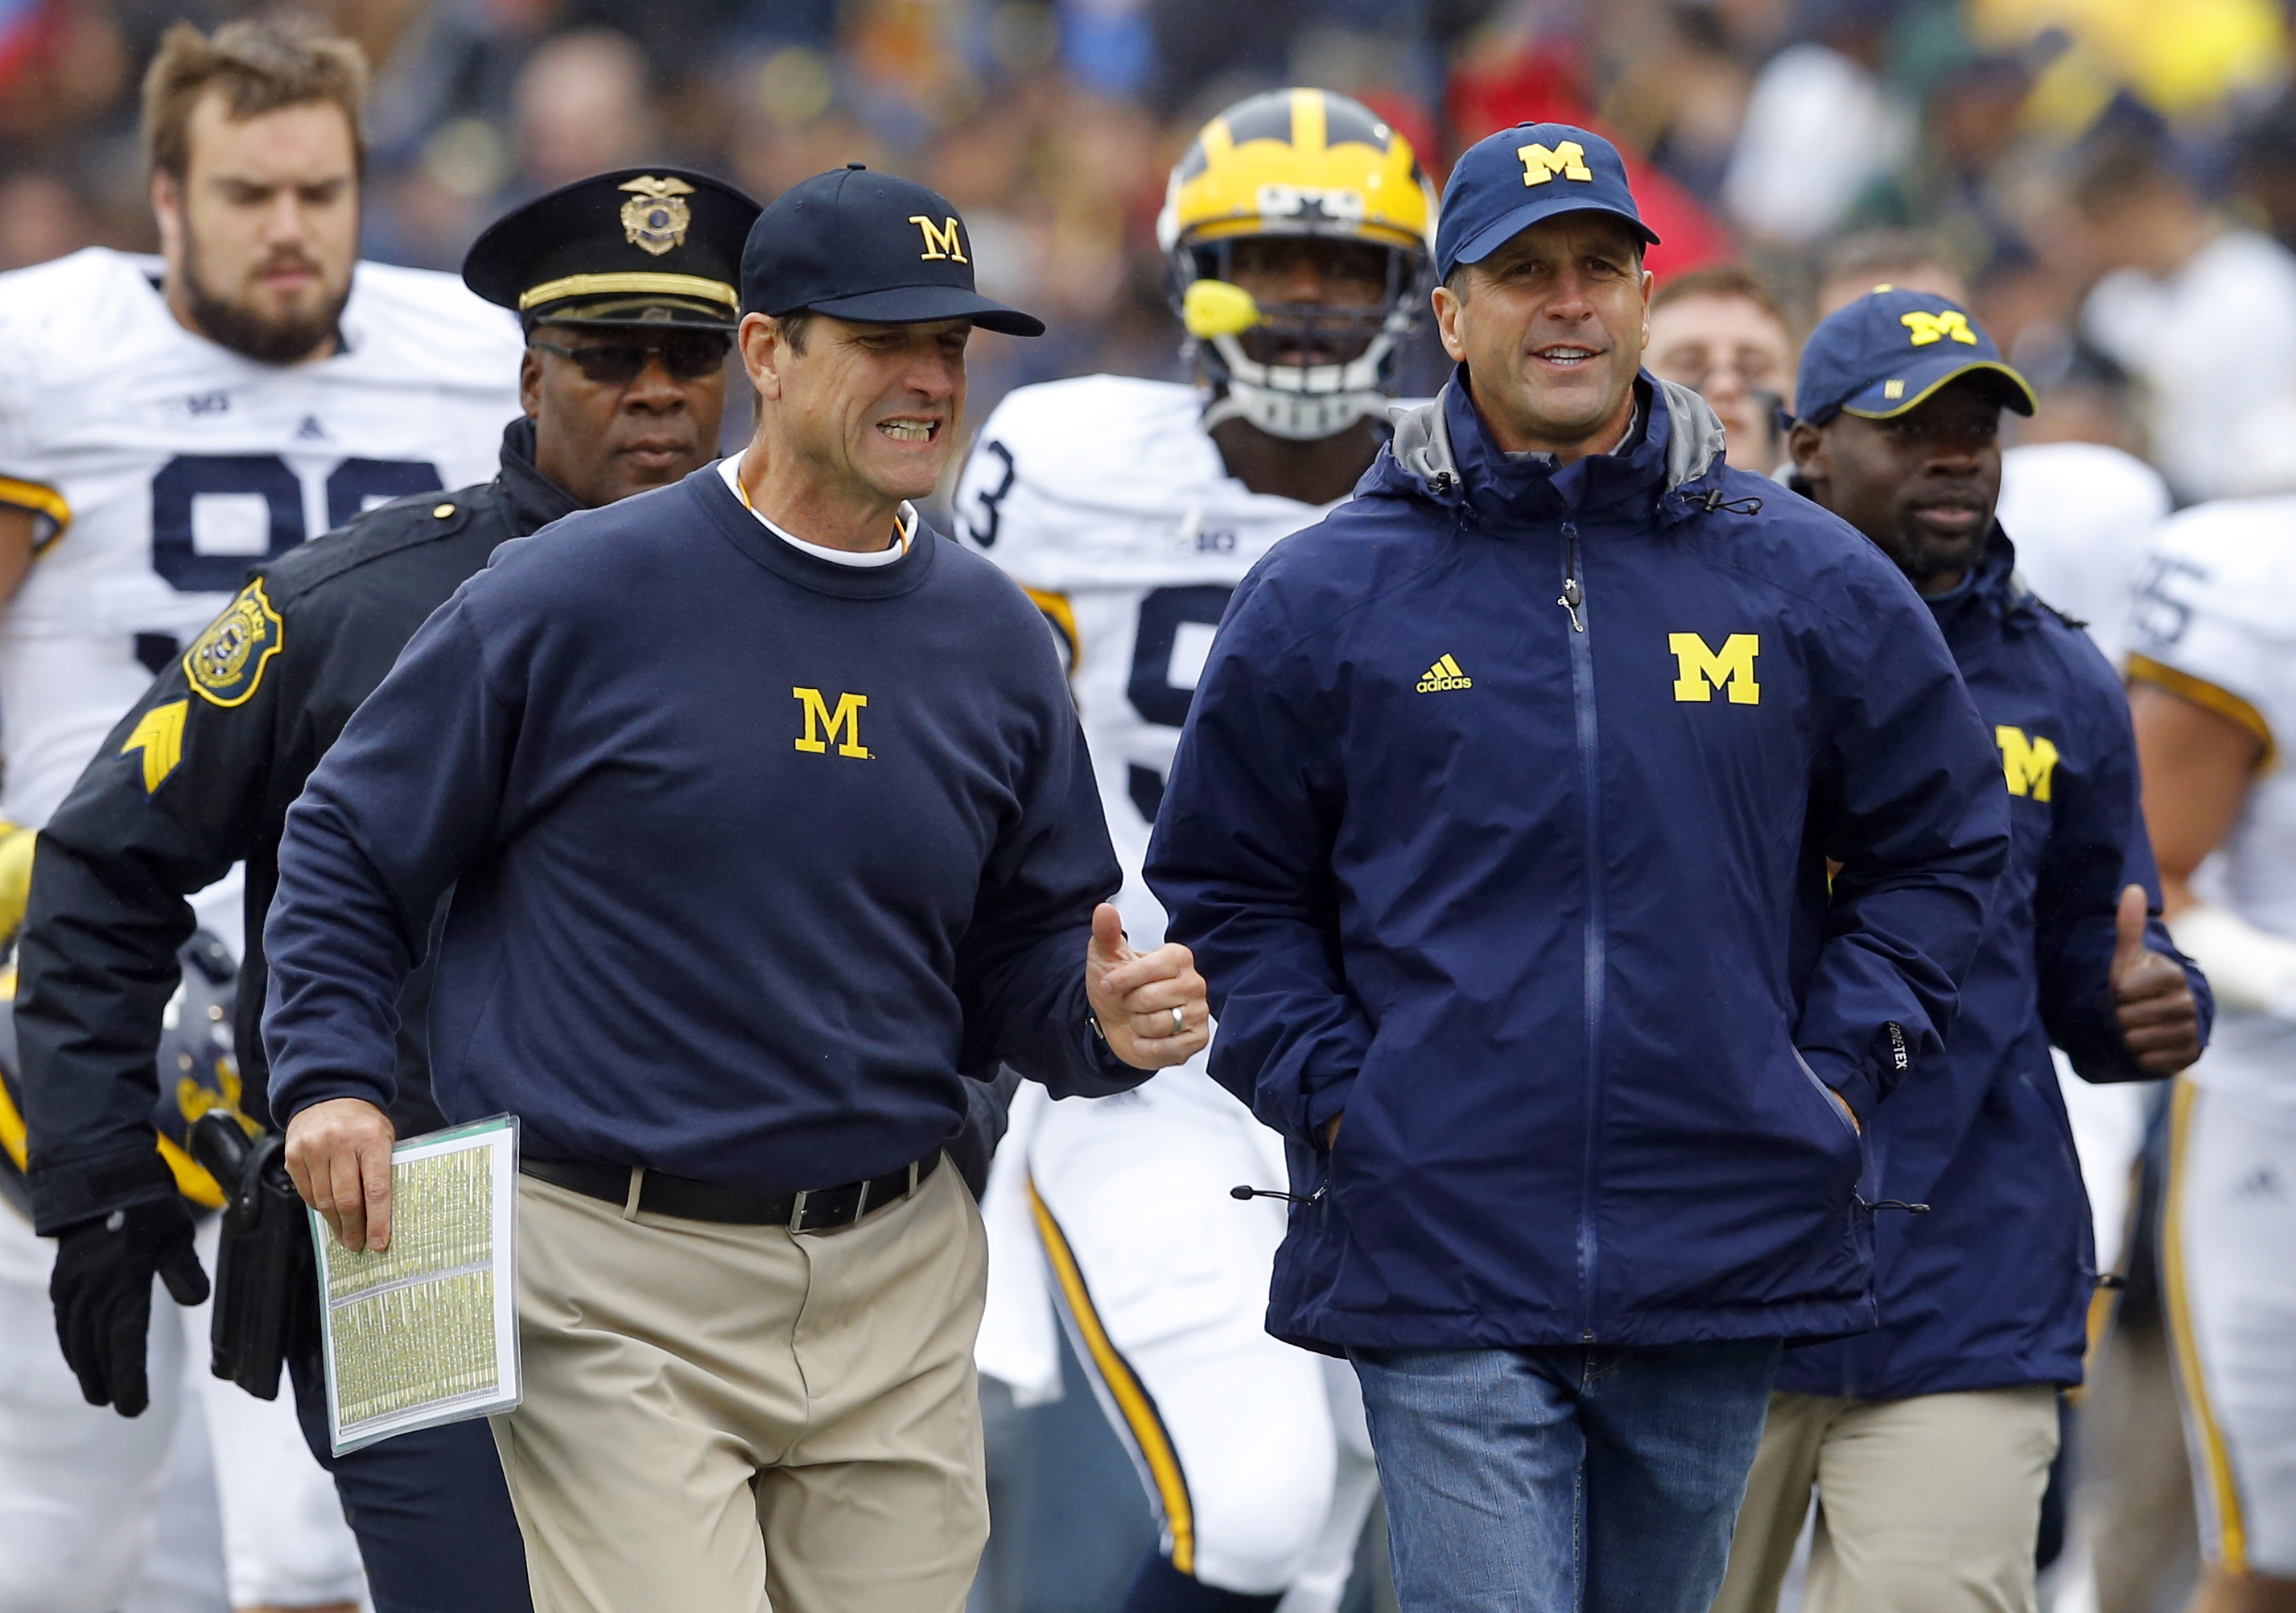 Michigan head coach Jim Harbaugh, left, jogs off the field with his brother, Baltimore Ravens head coach John Harbaugh, at the end of the first half of an NCAA college football game against Maryland, Saturday, Oct. 3, 2015, in College Park, Md. (AP Photo/